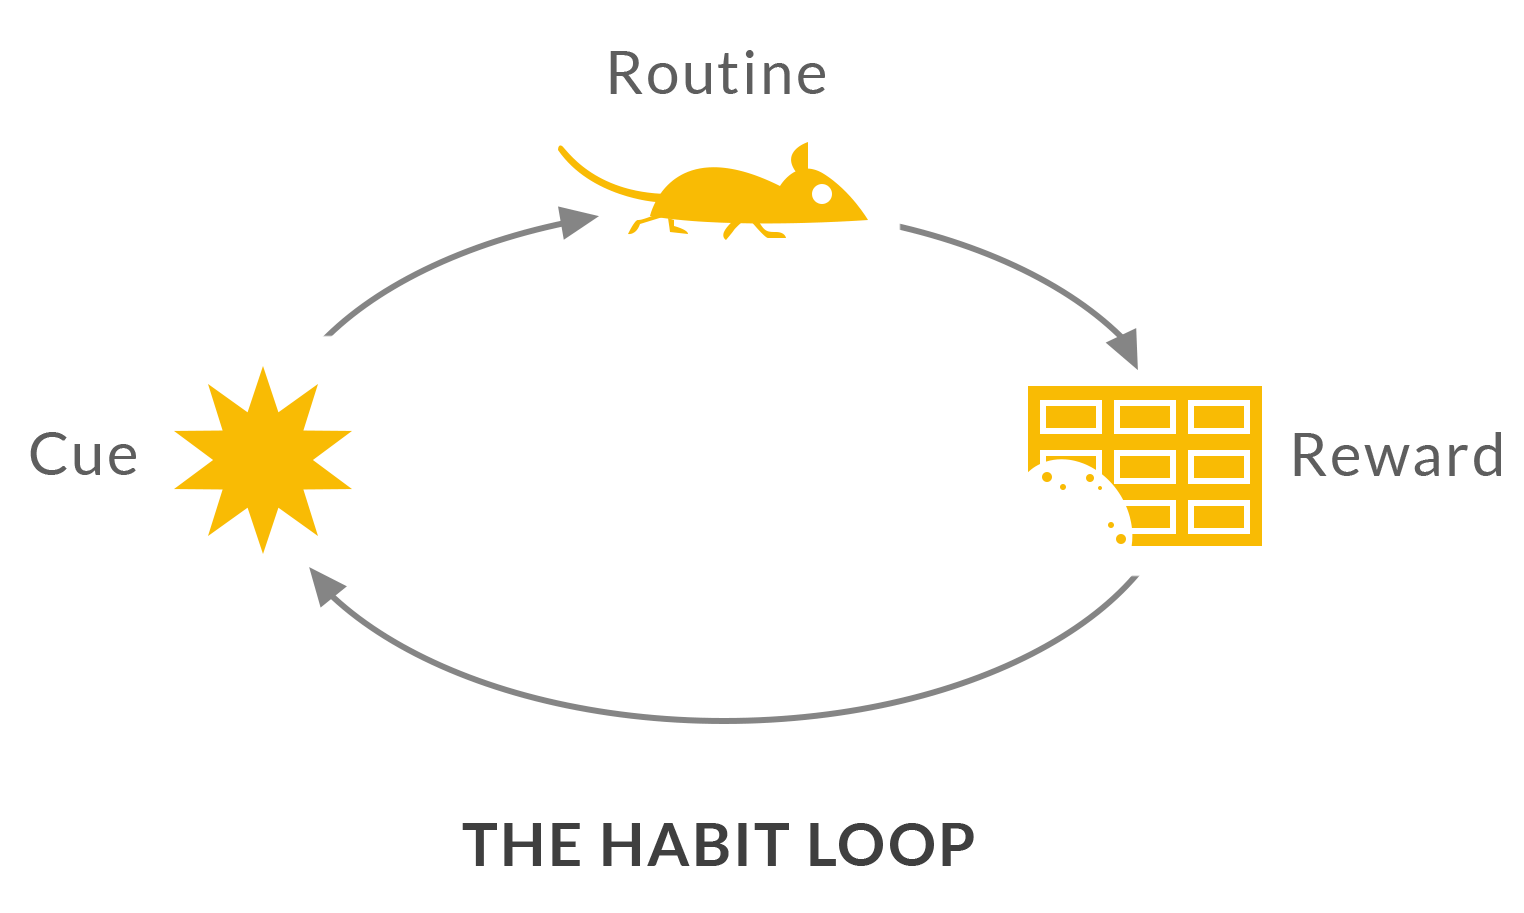 How To Break Bad Habits And Form Good Habits